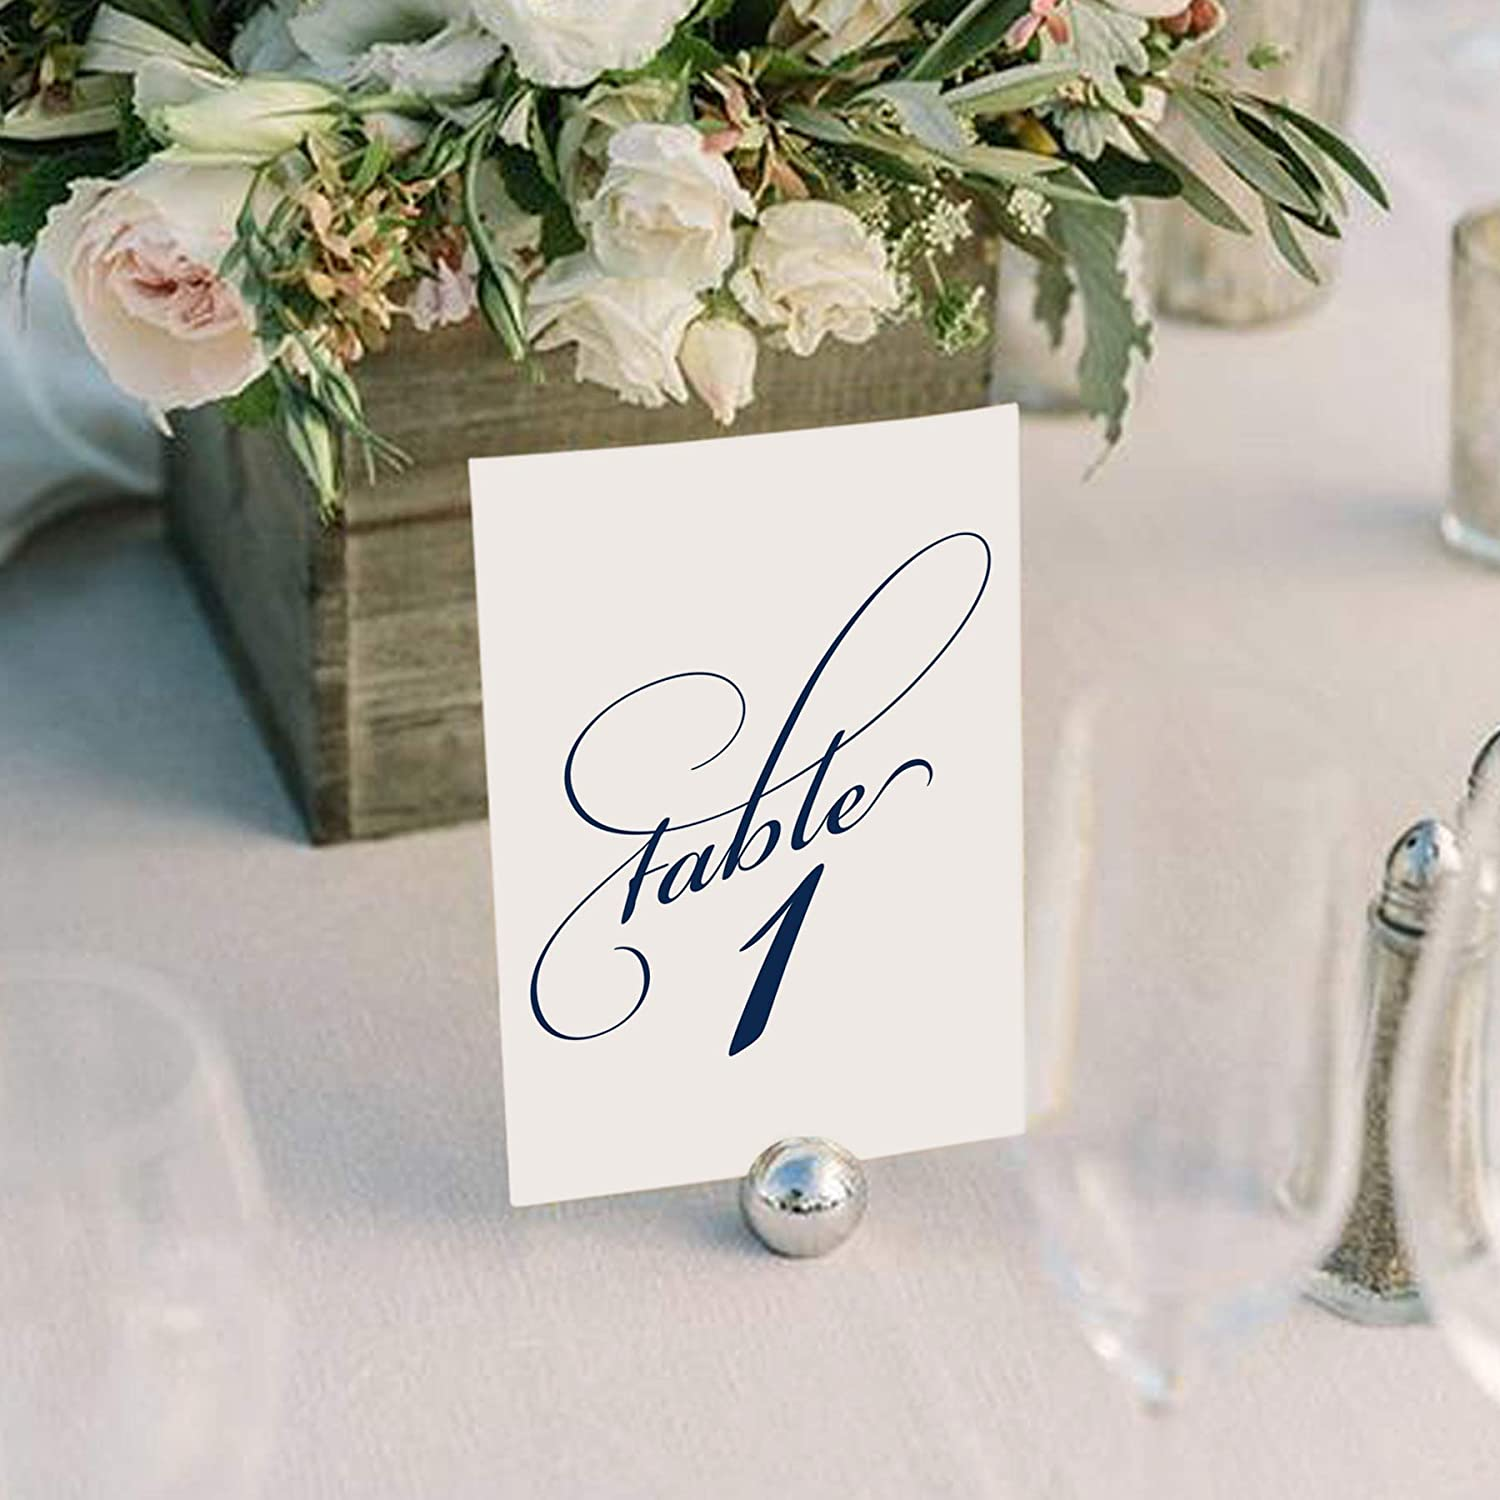 Black Wedding Table Numbers Numbers 1-25 and Head Table Card Included from Bliss Paper Boutique Double Sided 4x6 Calligraphy Design Assorted Color Options Available